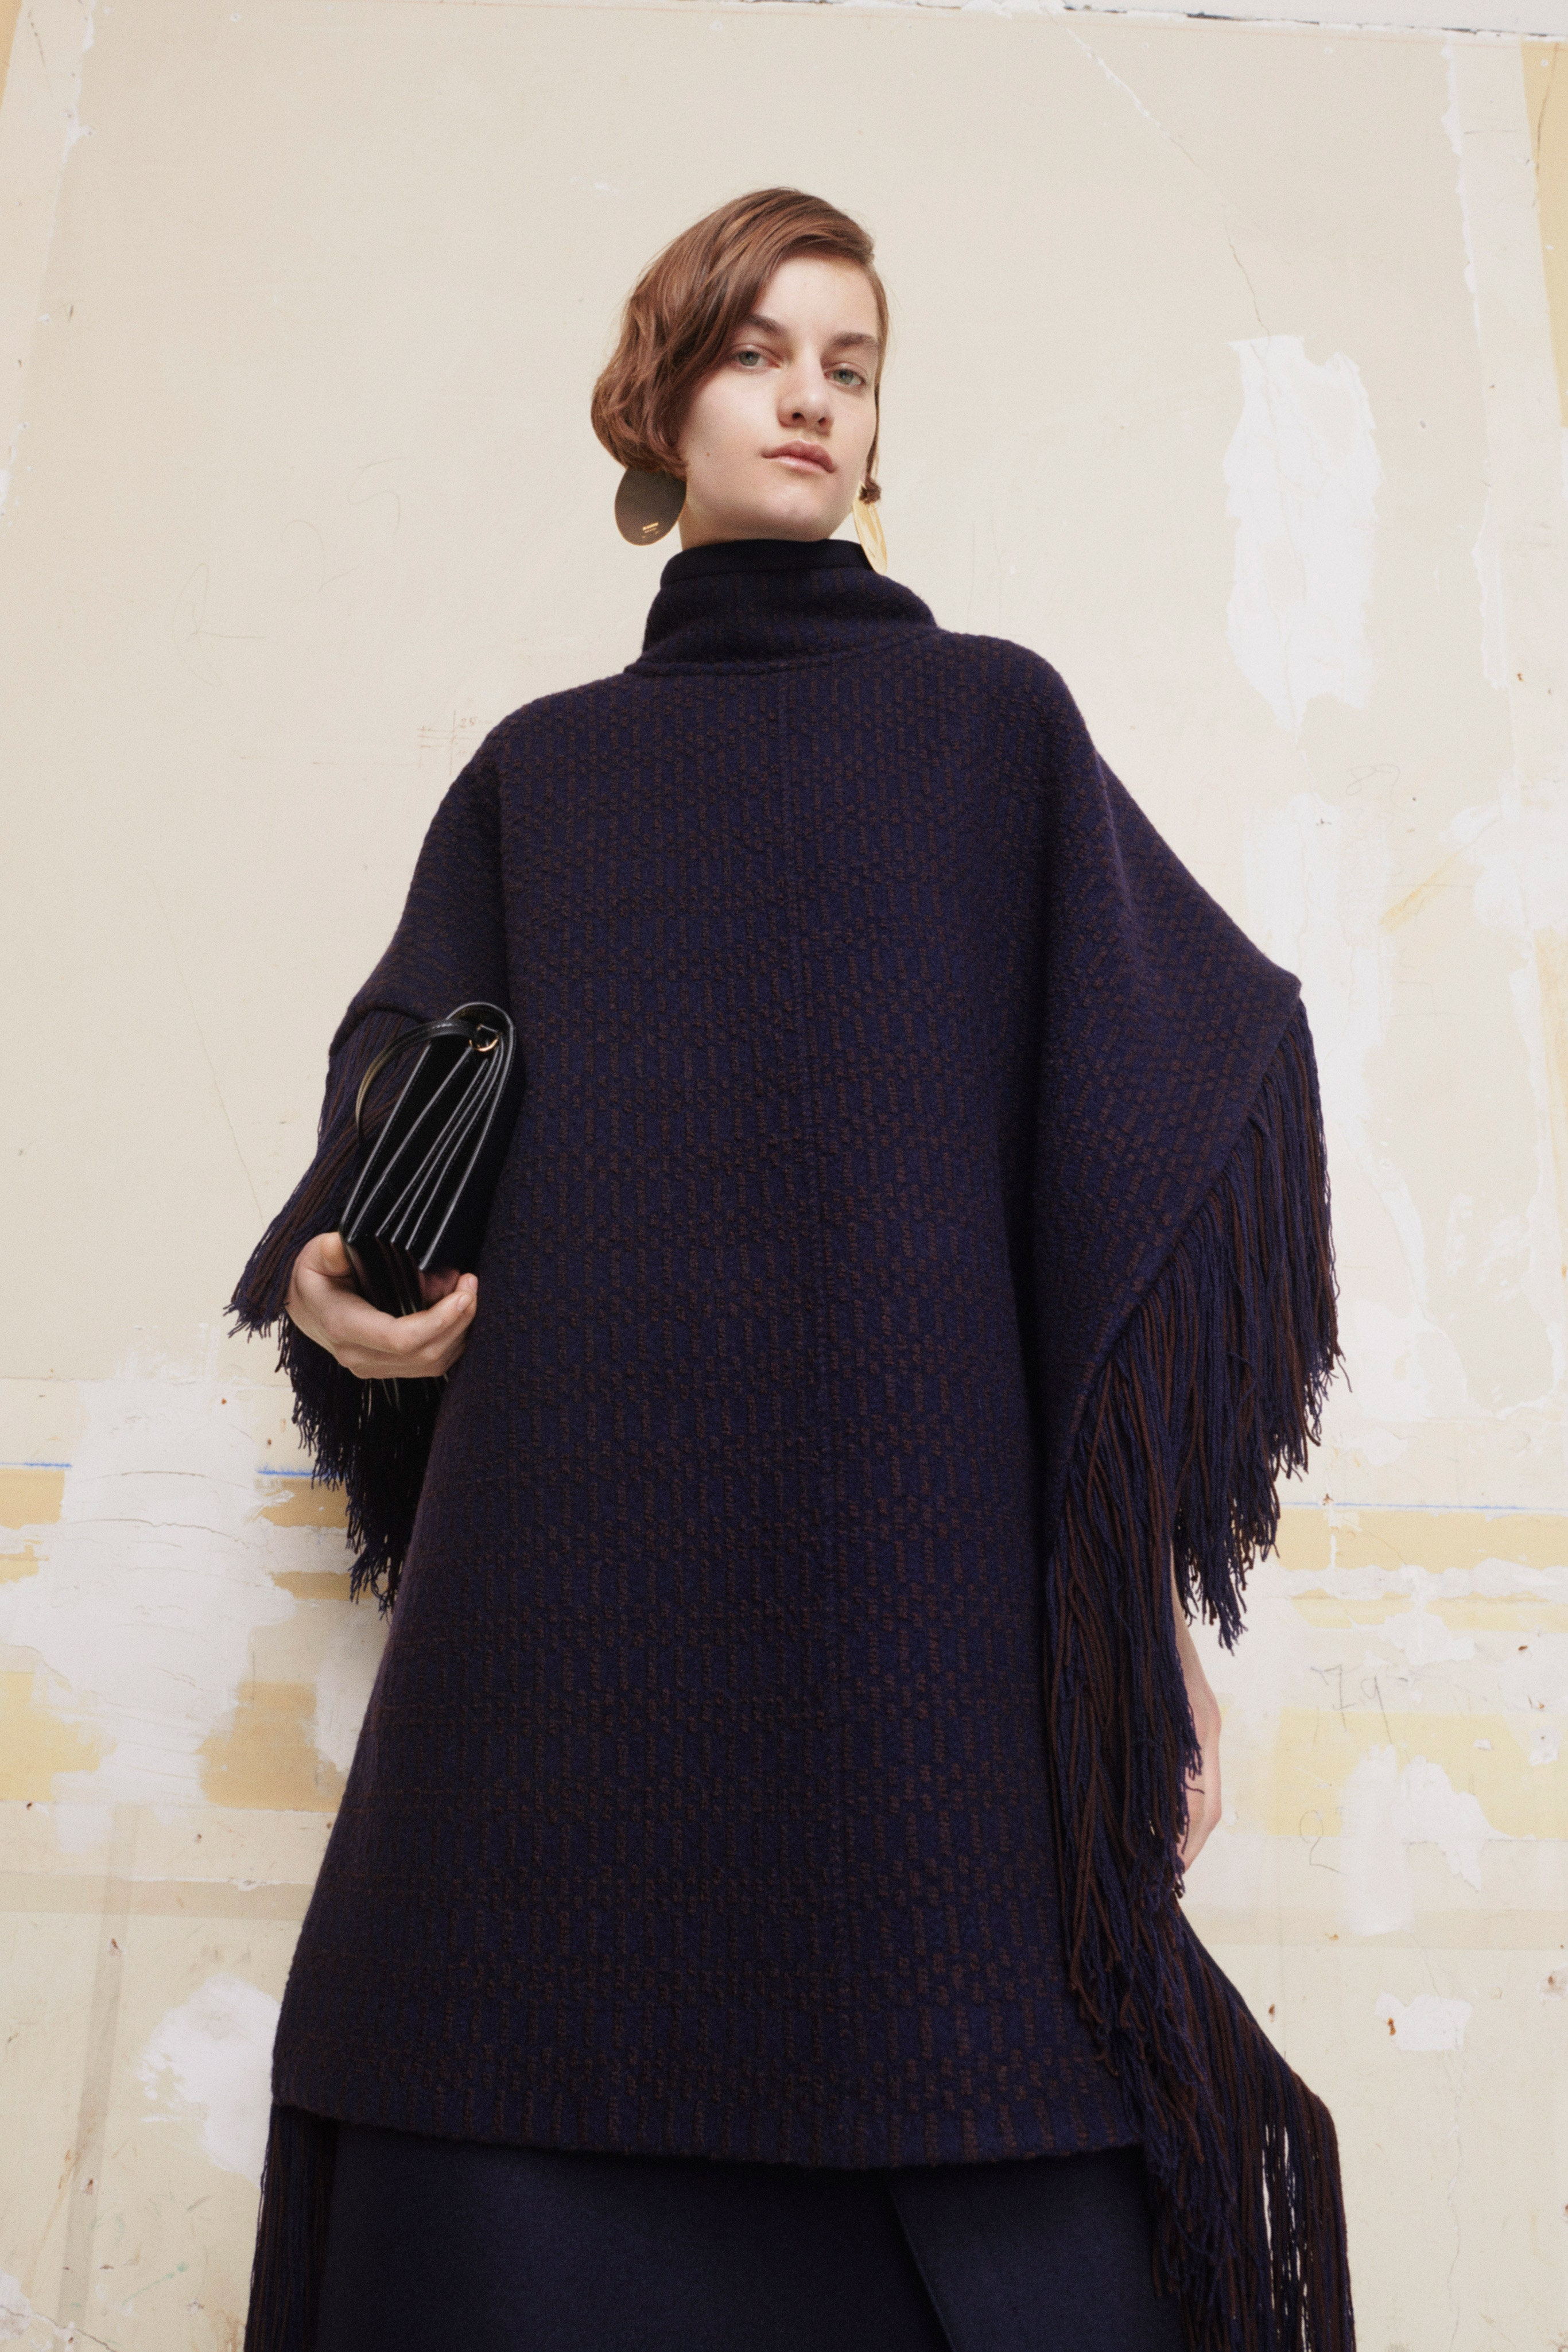 For walks in the fresh air: A seasonal collection of Jil Sander arrived at Asthik (photo 40)